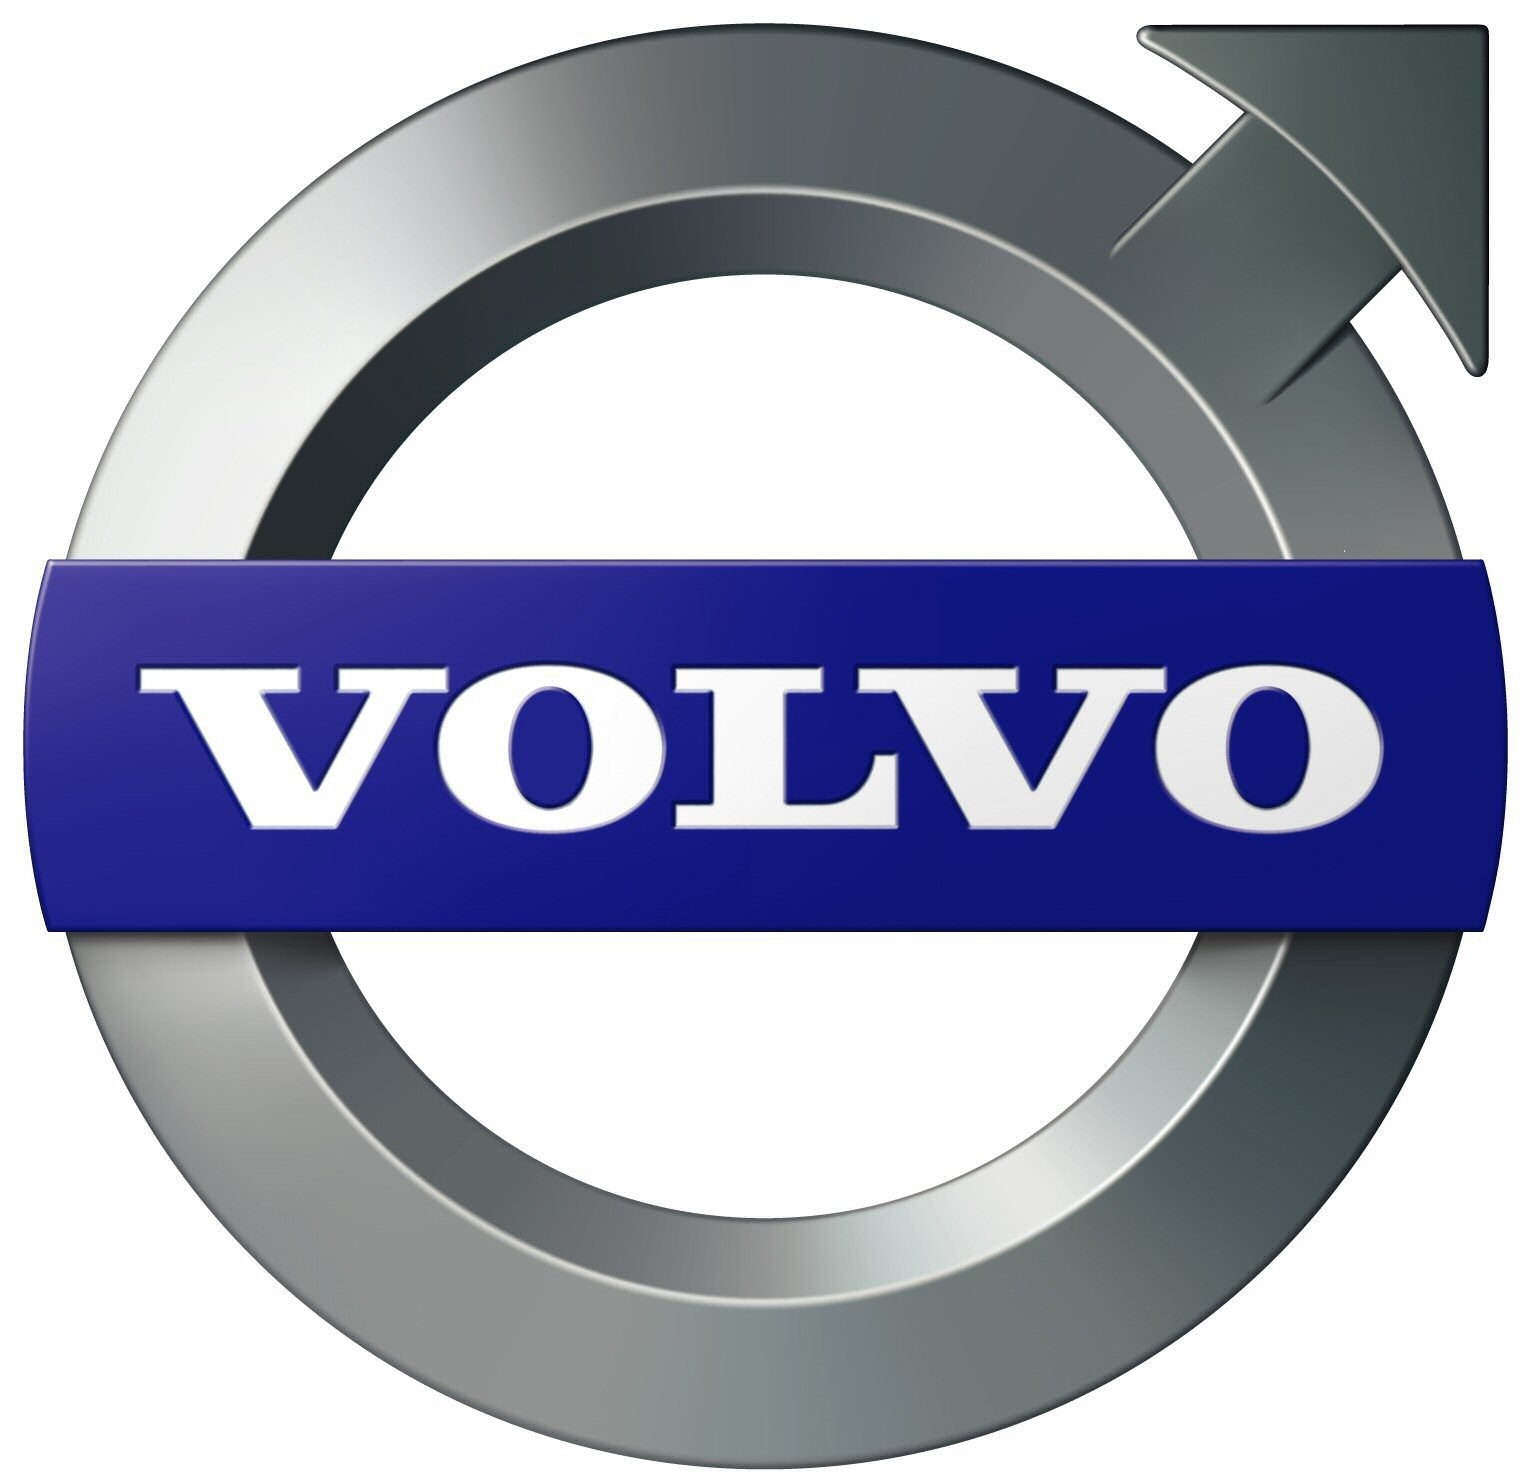 Information about Volvo's new safety technologies